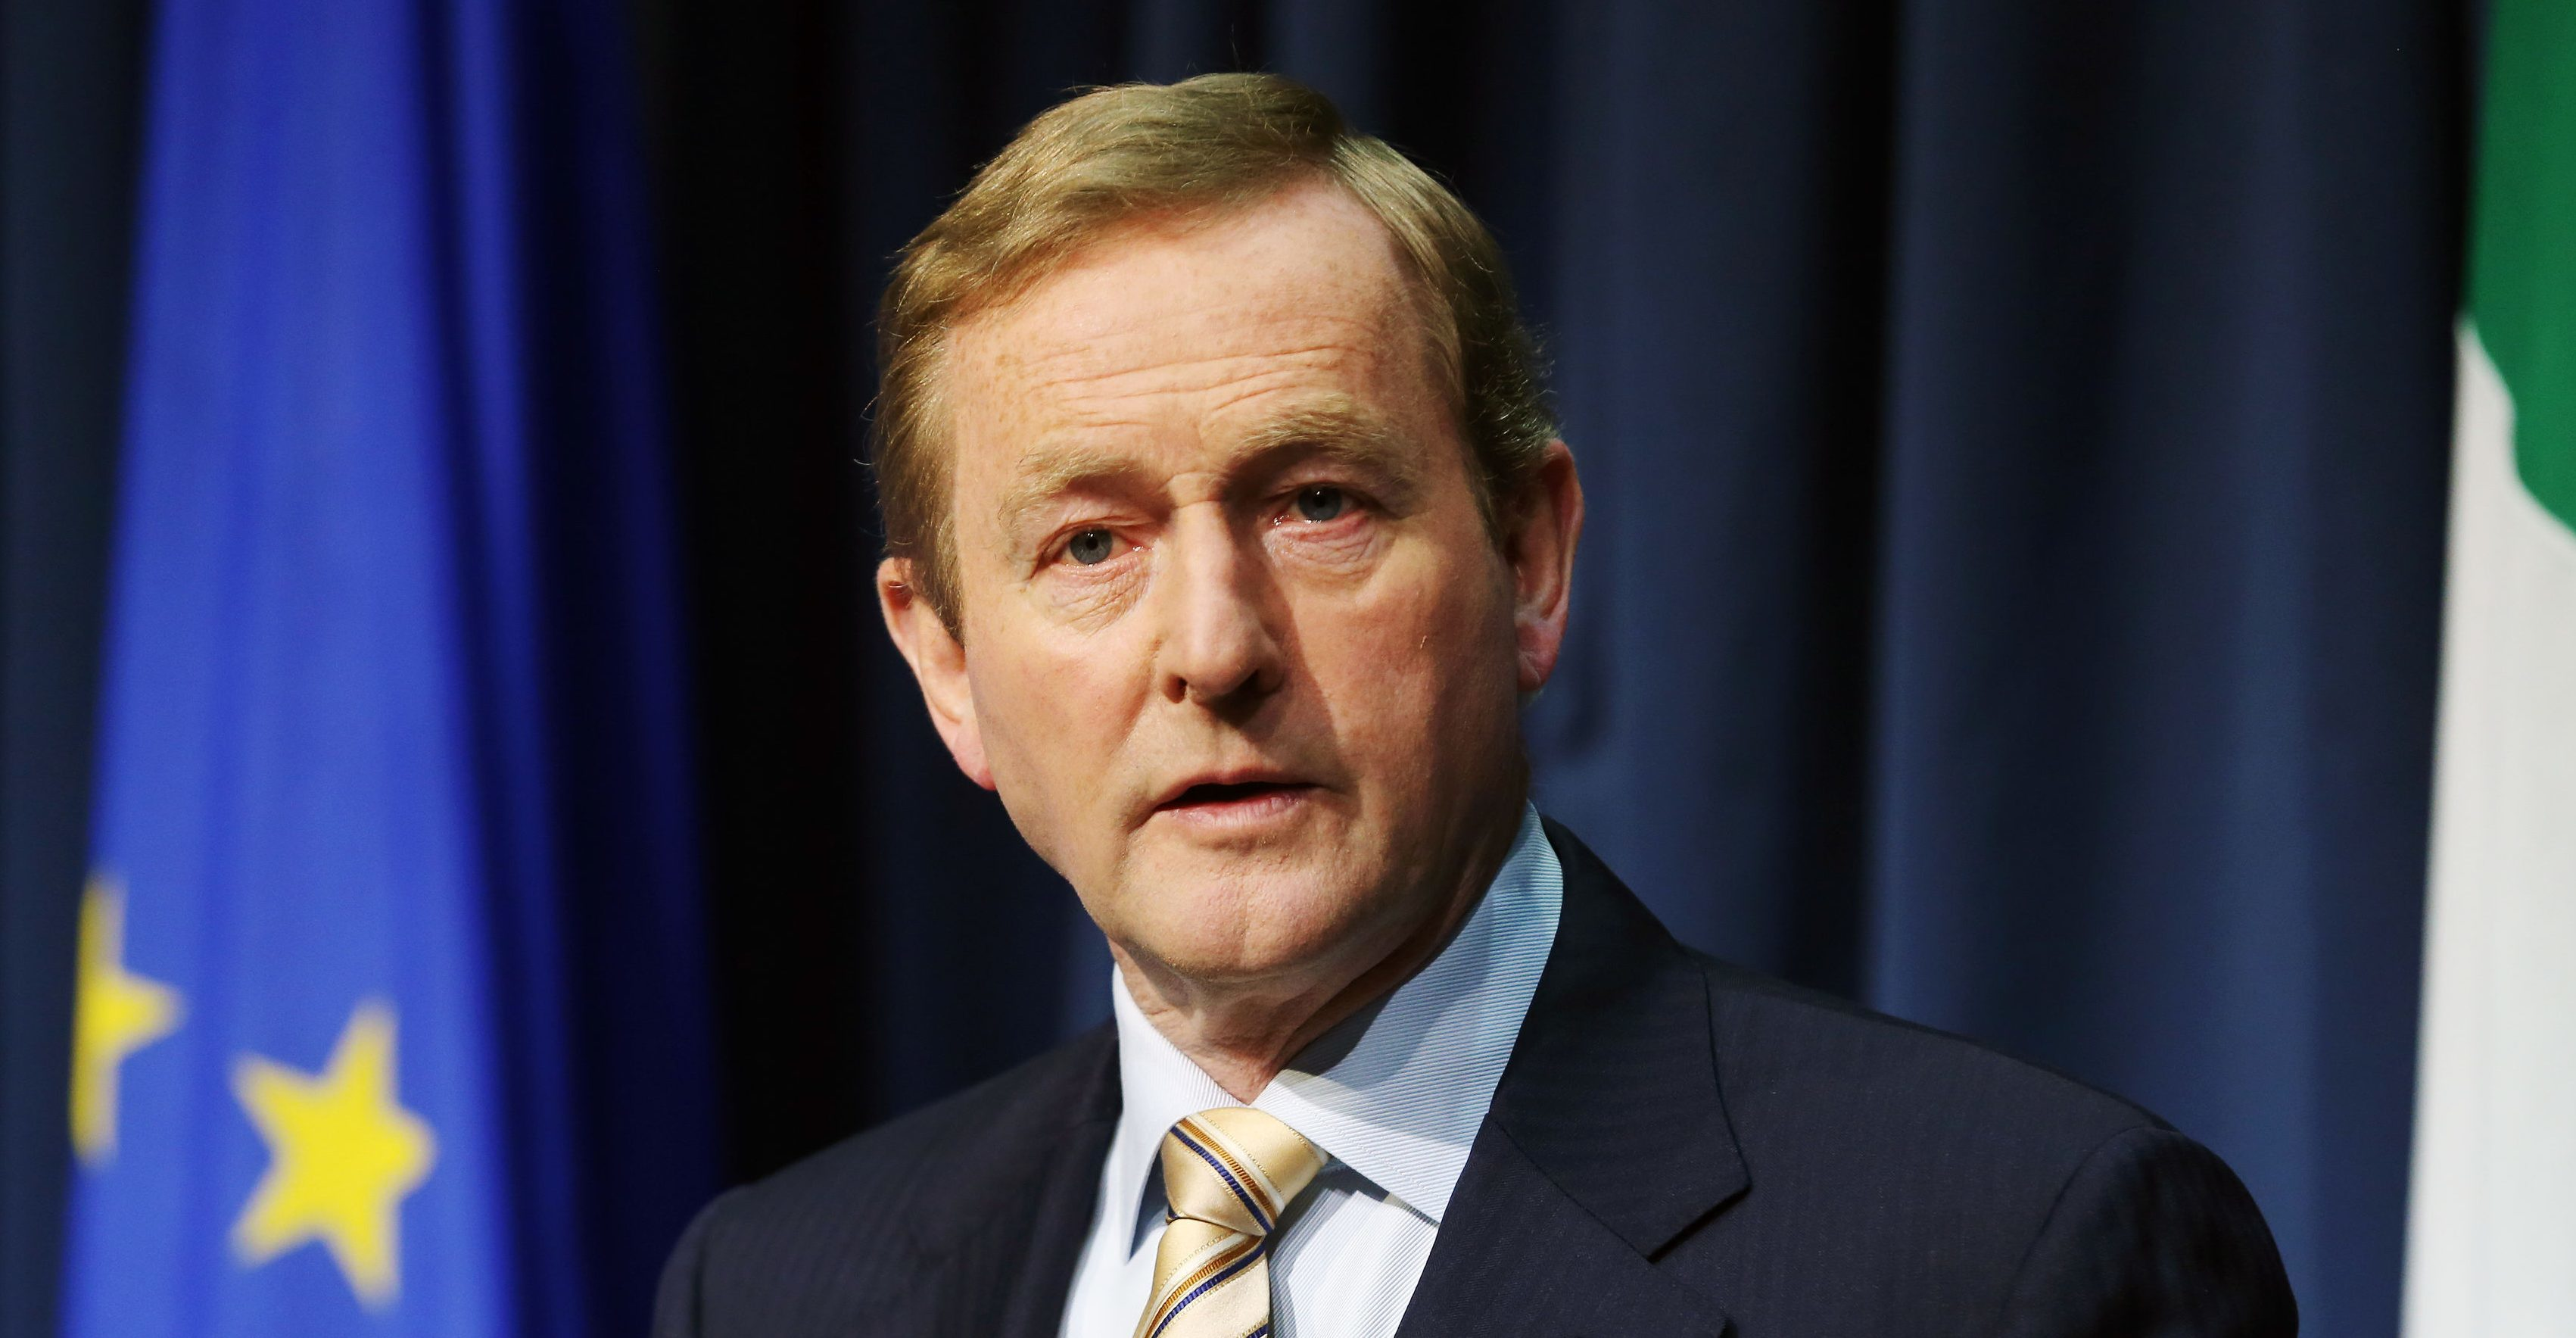 Irish Taoiseach Enda Kenny speaks during a press conference in Dublin, after Britain voted to leave the European Union.